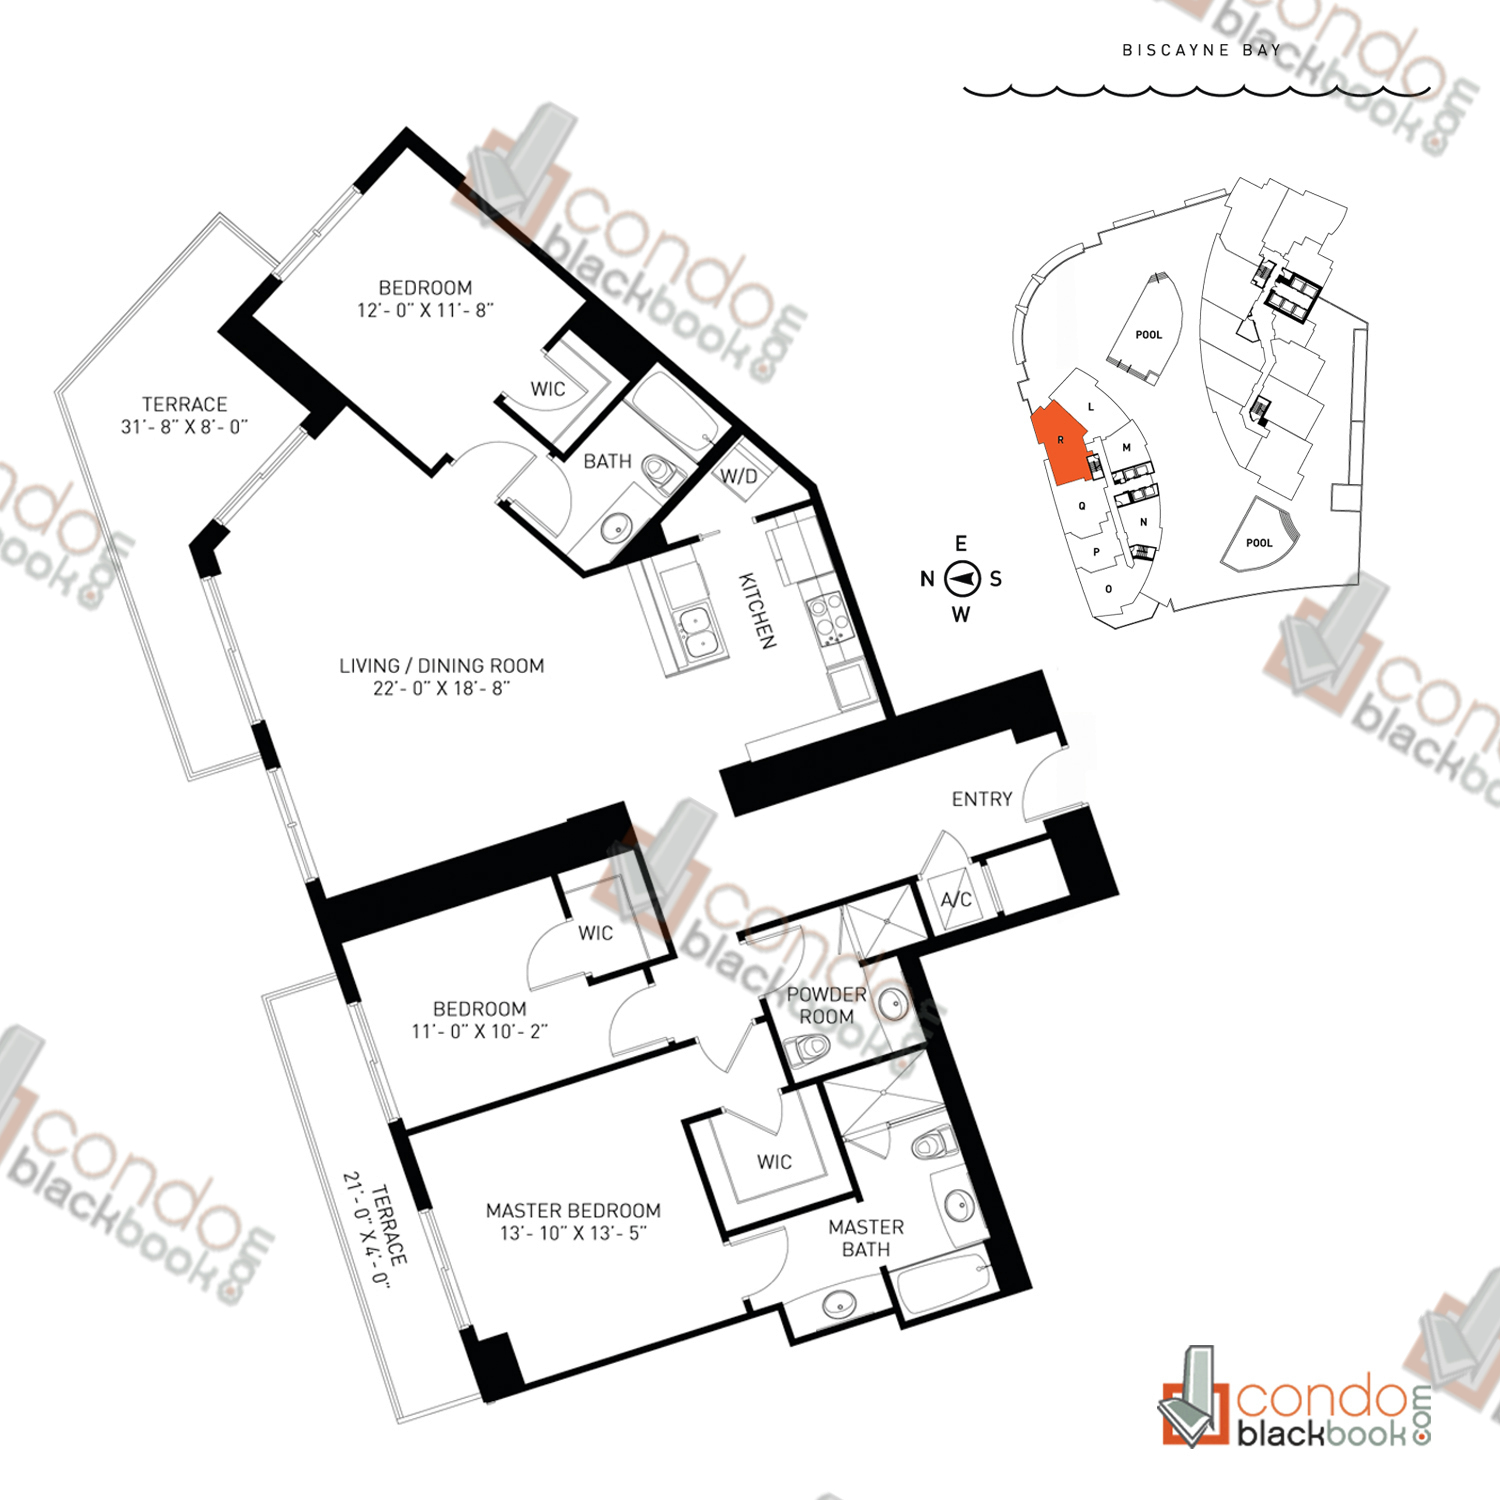 Floor plan for Quantum on the Bay Edgewater Miami, model Residence_R, line 12N, 3/3 bedrooms, 1,620 sq ft